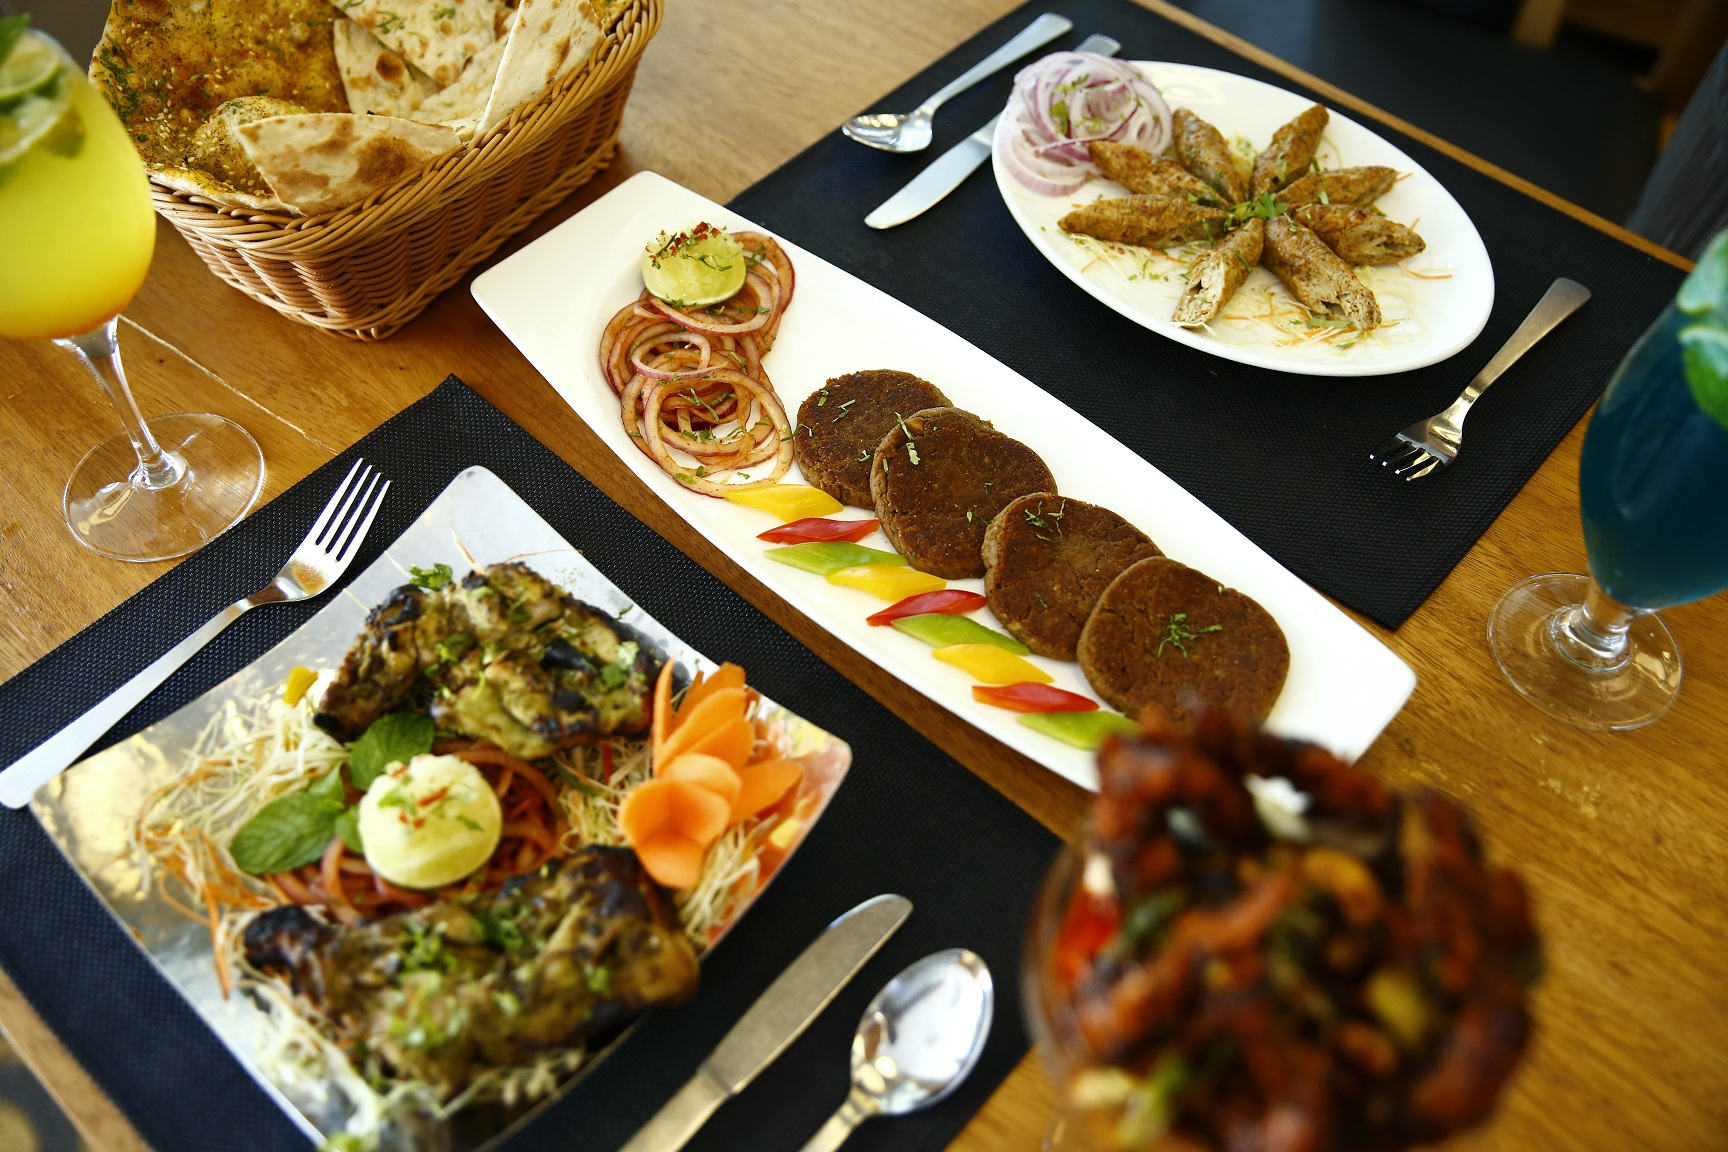 catering-to-different-tastes2019-02-09-06-55-01